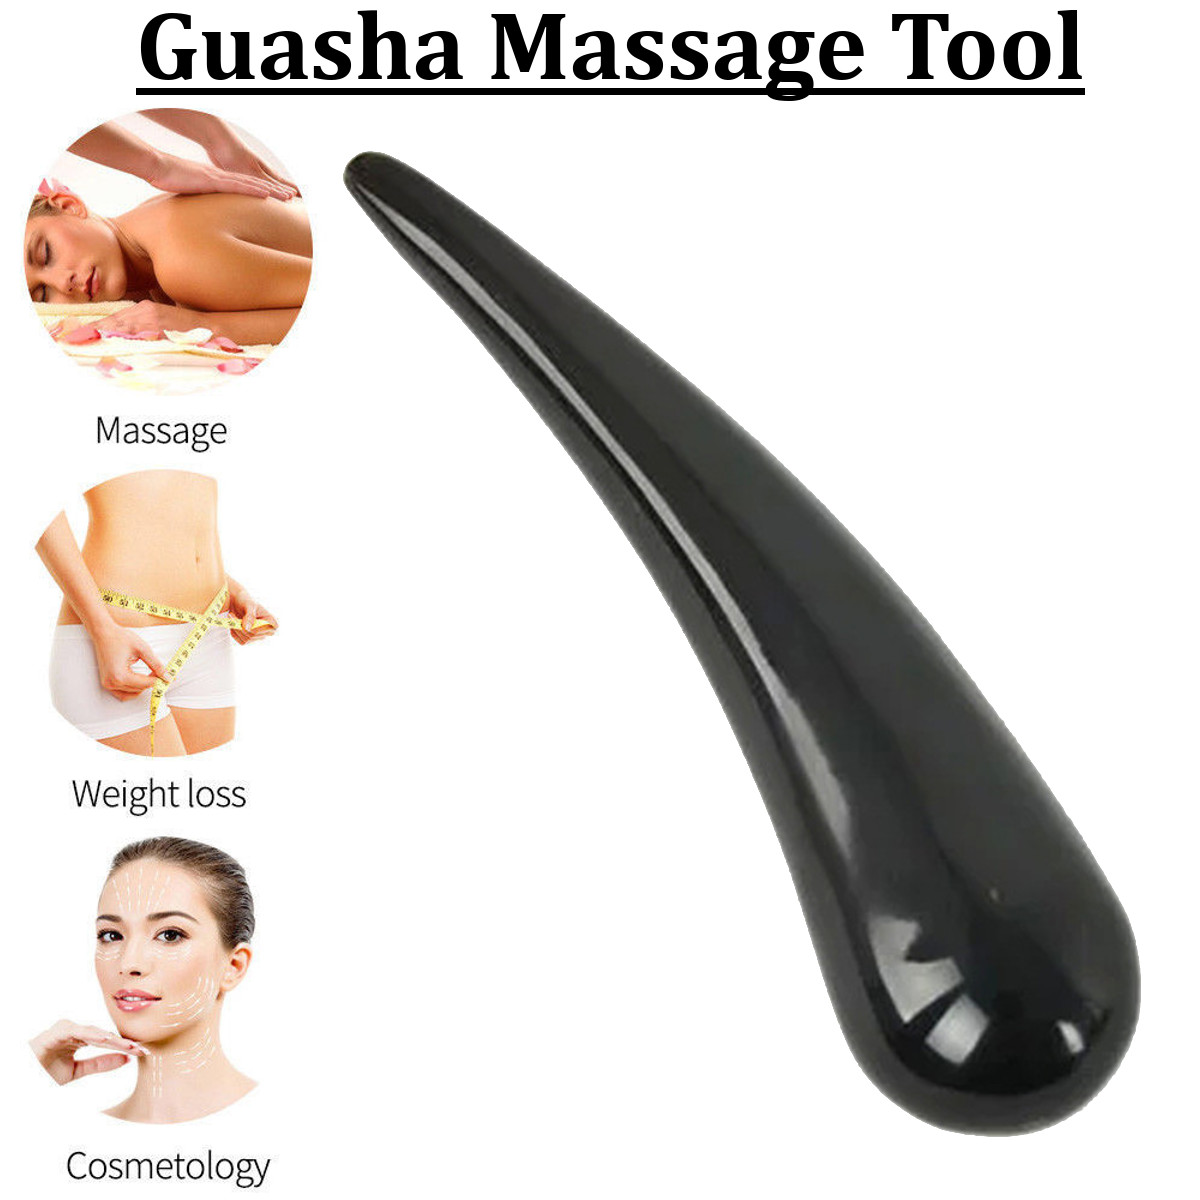 Health Care Acupuncture Point Gua Sha Stick Buffalo Horn Foot Massage Body Jade Massage Board Stone Tool SPA Therapy MassagerHealth Care Acupuncture Point Gua Sha Stick Buffalo Horn Foot Massage Body Jade Massage Board Stone Tool SPA Therapy Massager